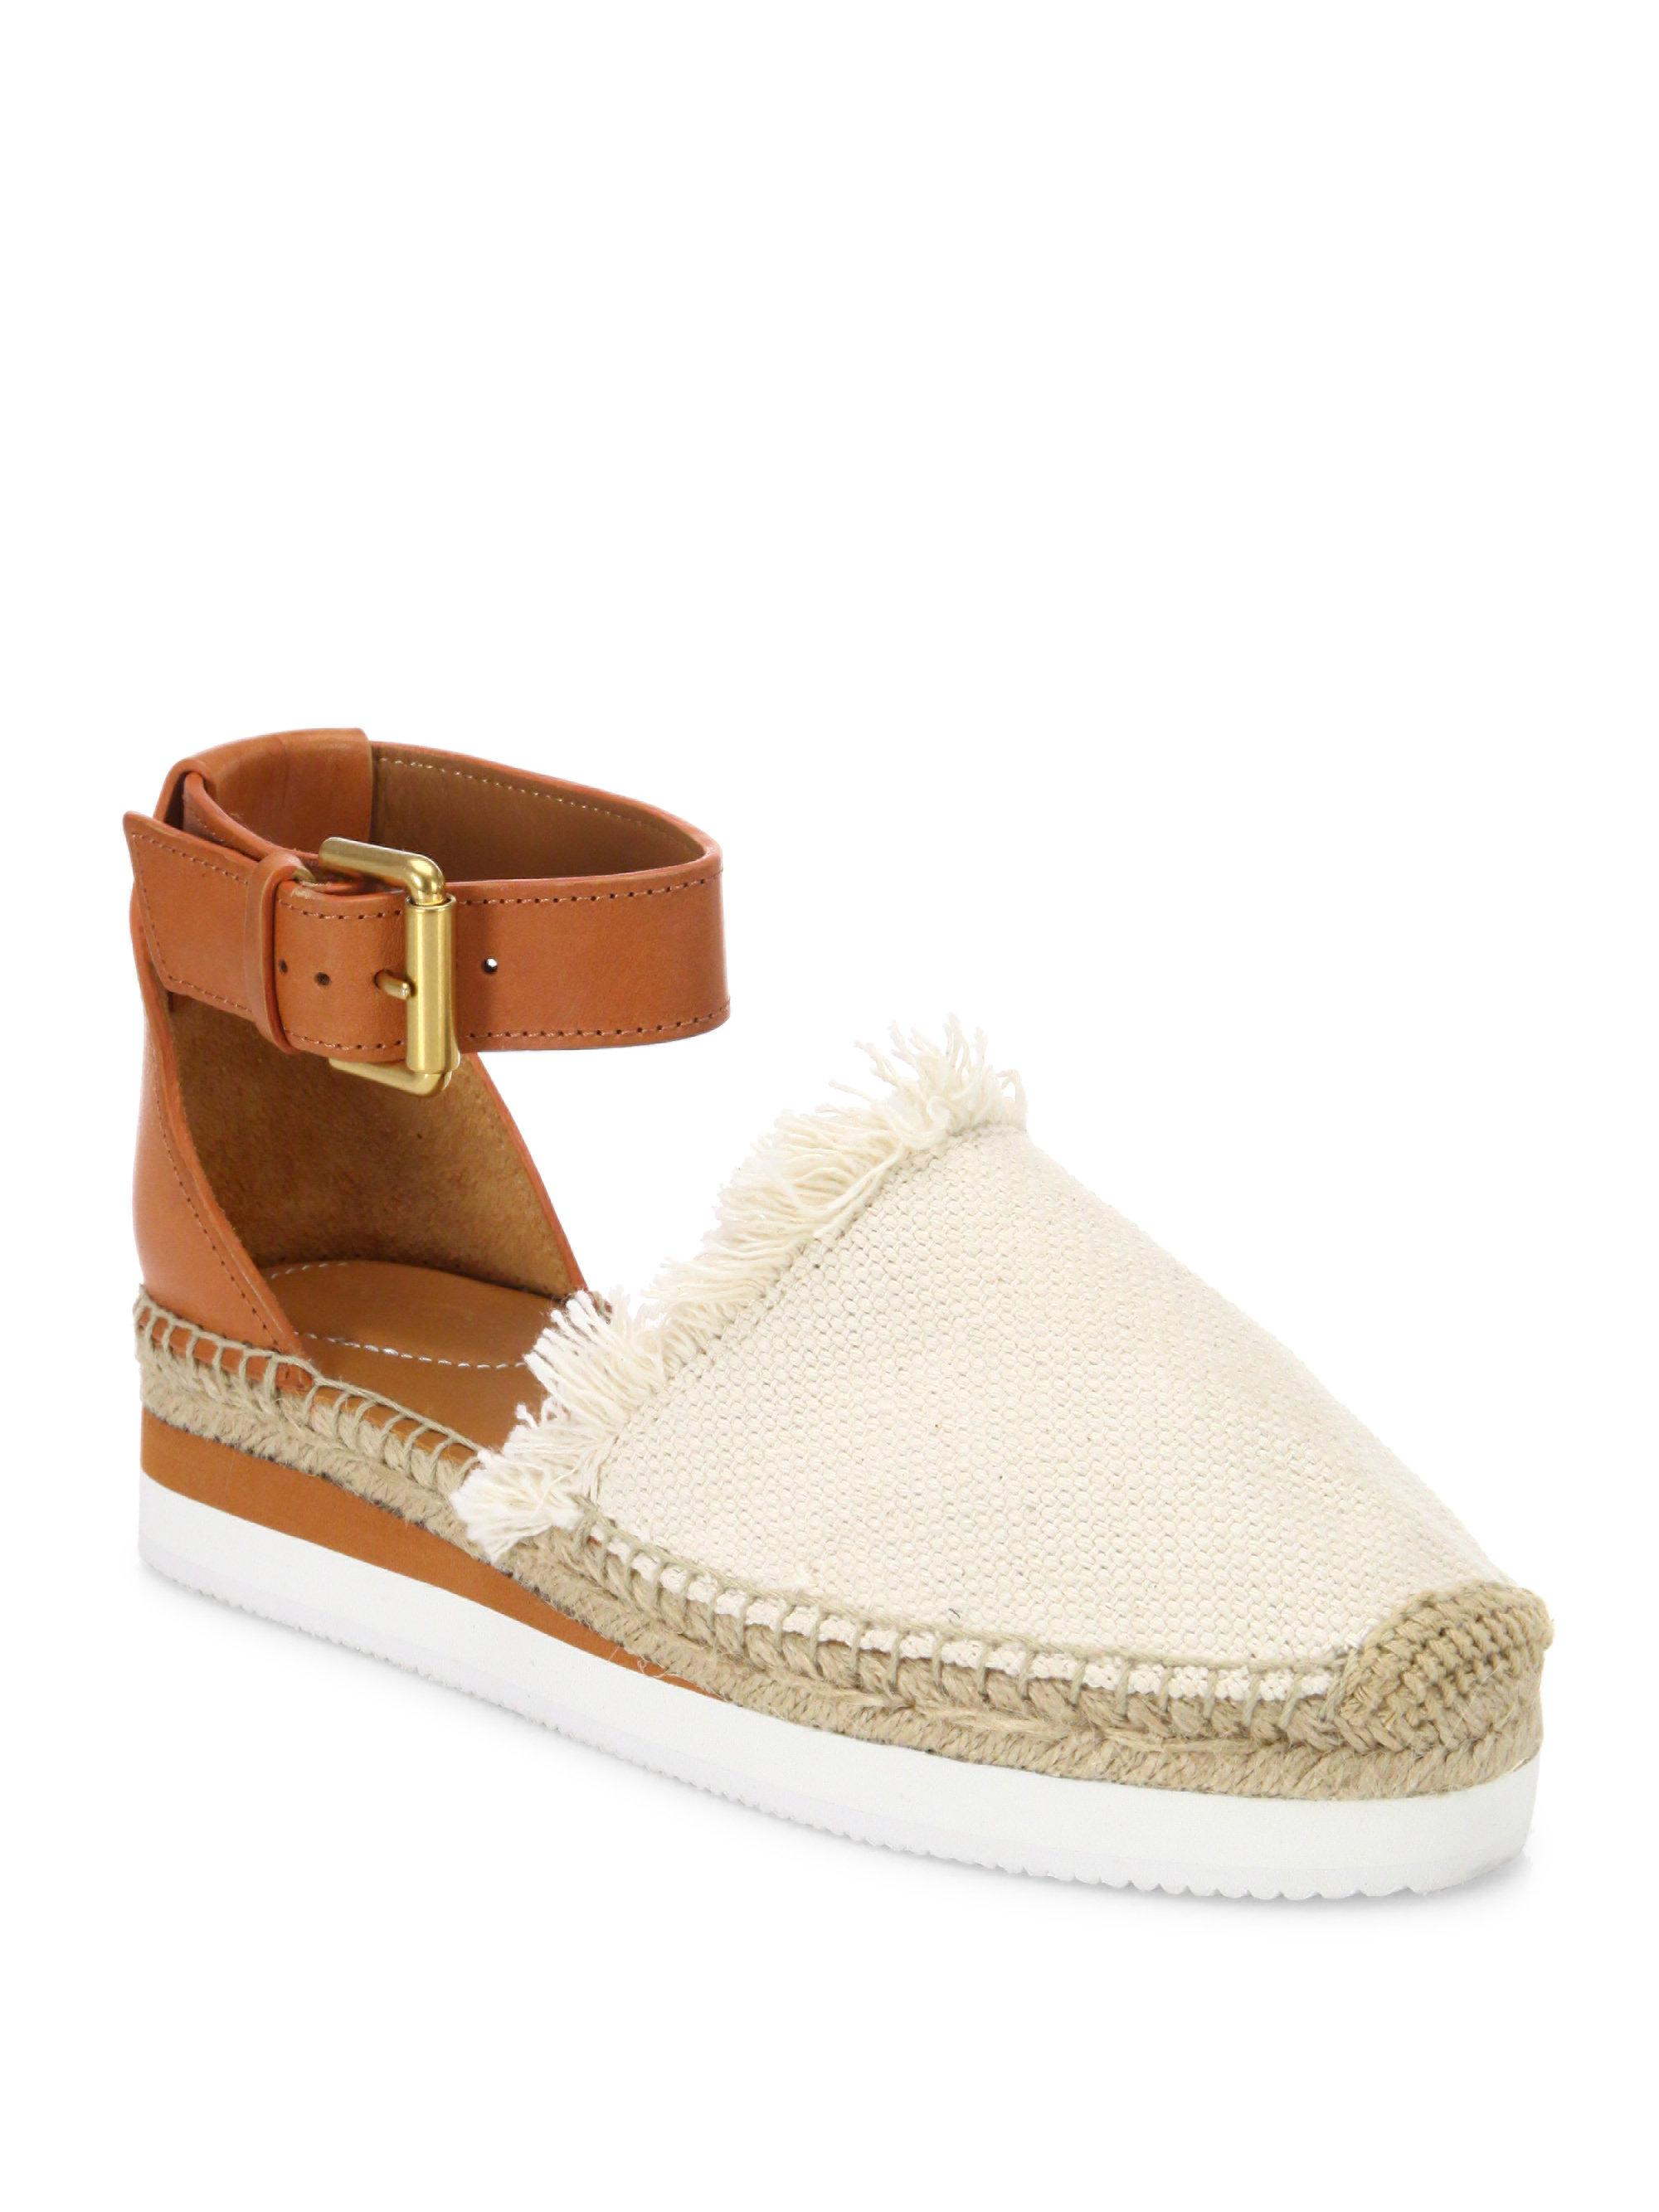 Outlet Authentic Cheap Sale Best Place Canvas and suede espadrilles Chlo xads1